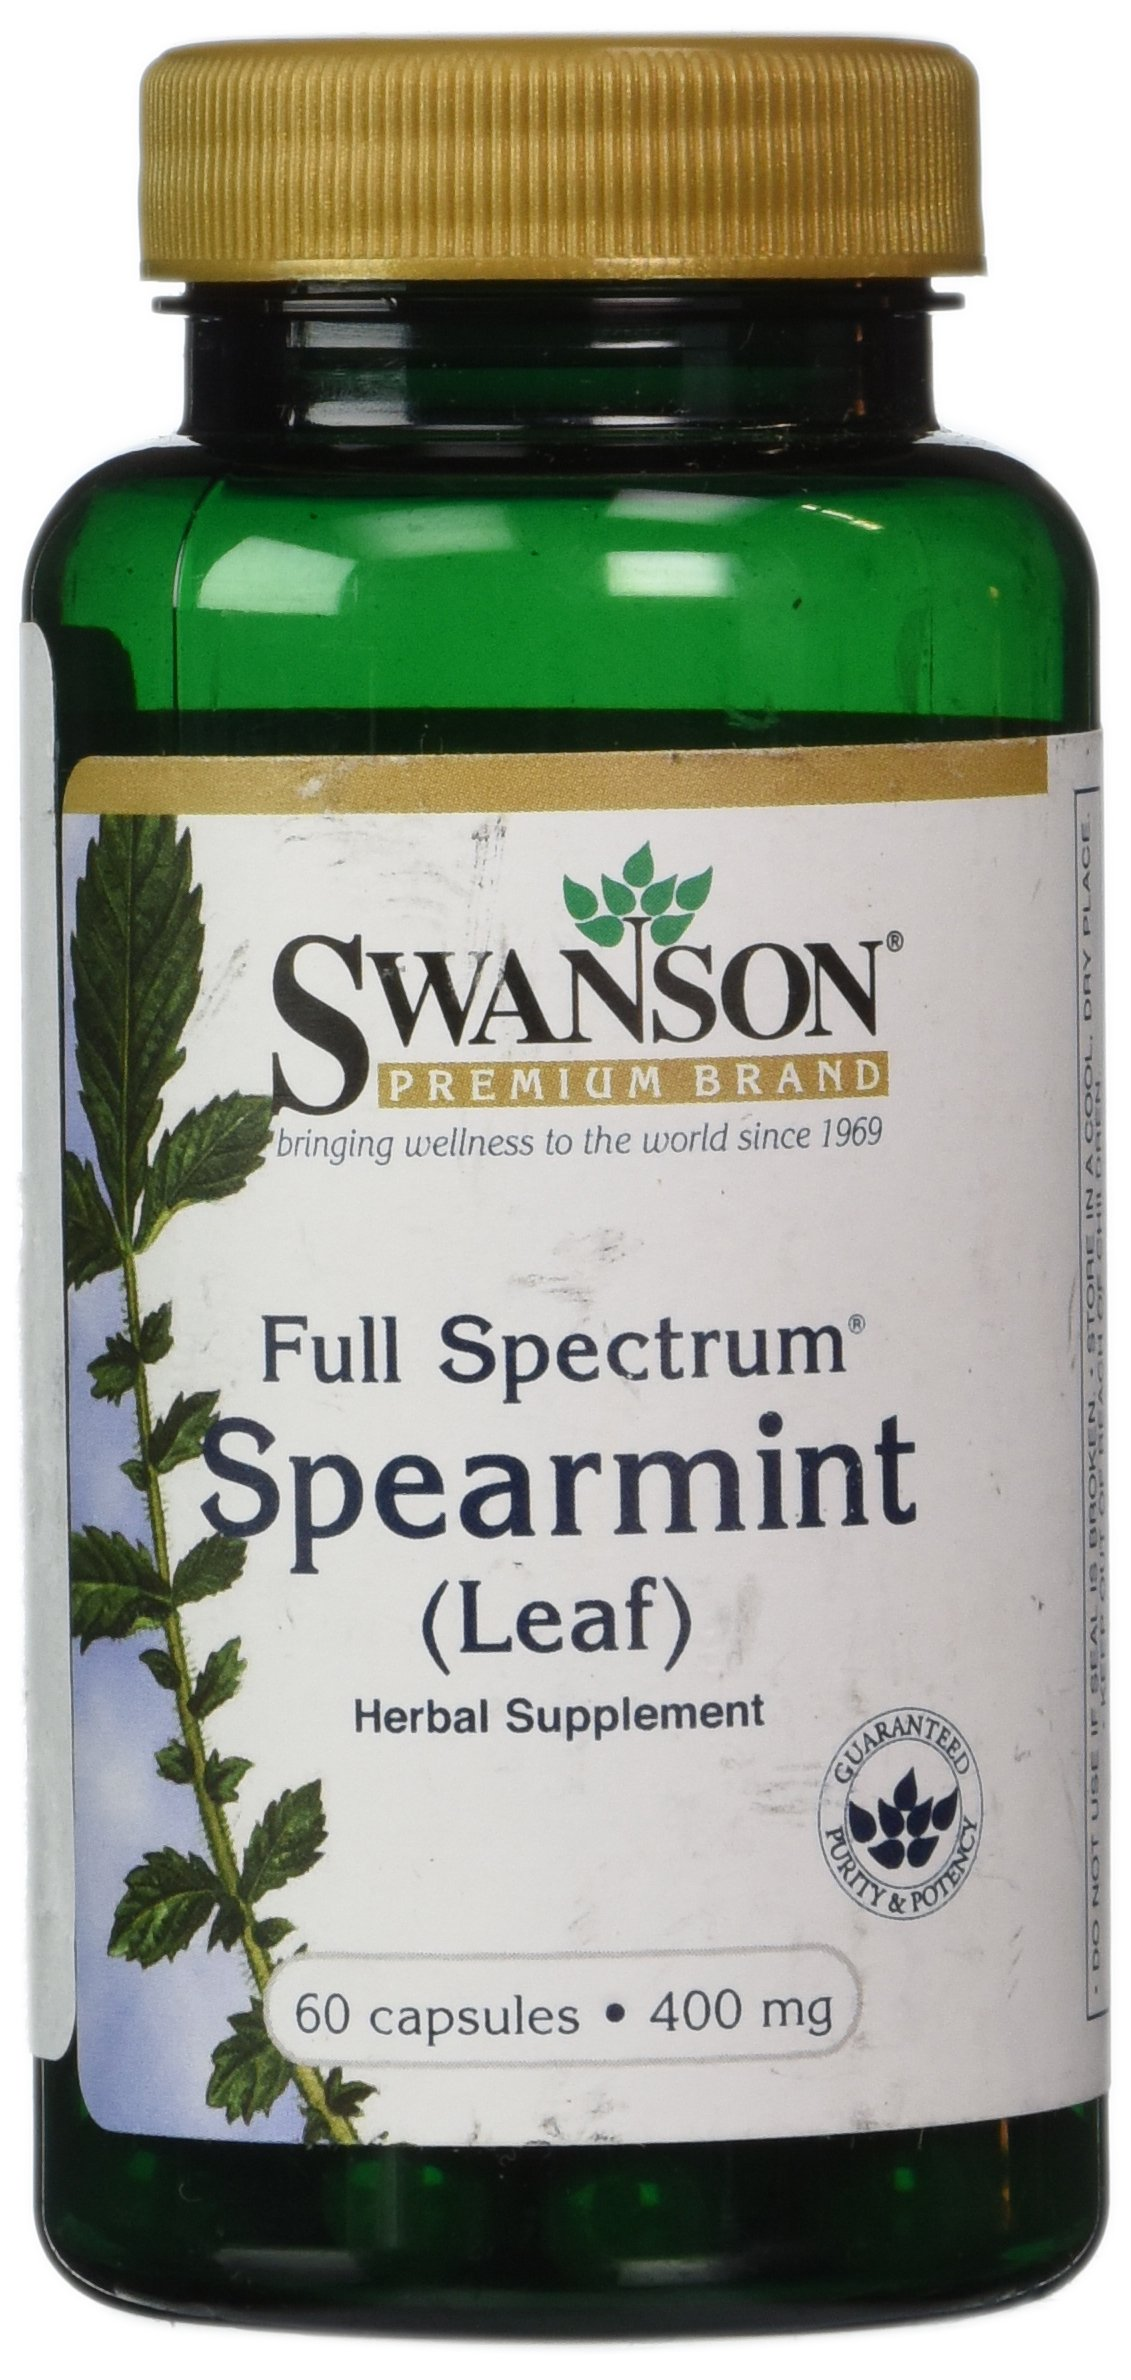 Swanson Full Spectrum Spearmint Leaf 400 mg 60 Caps